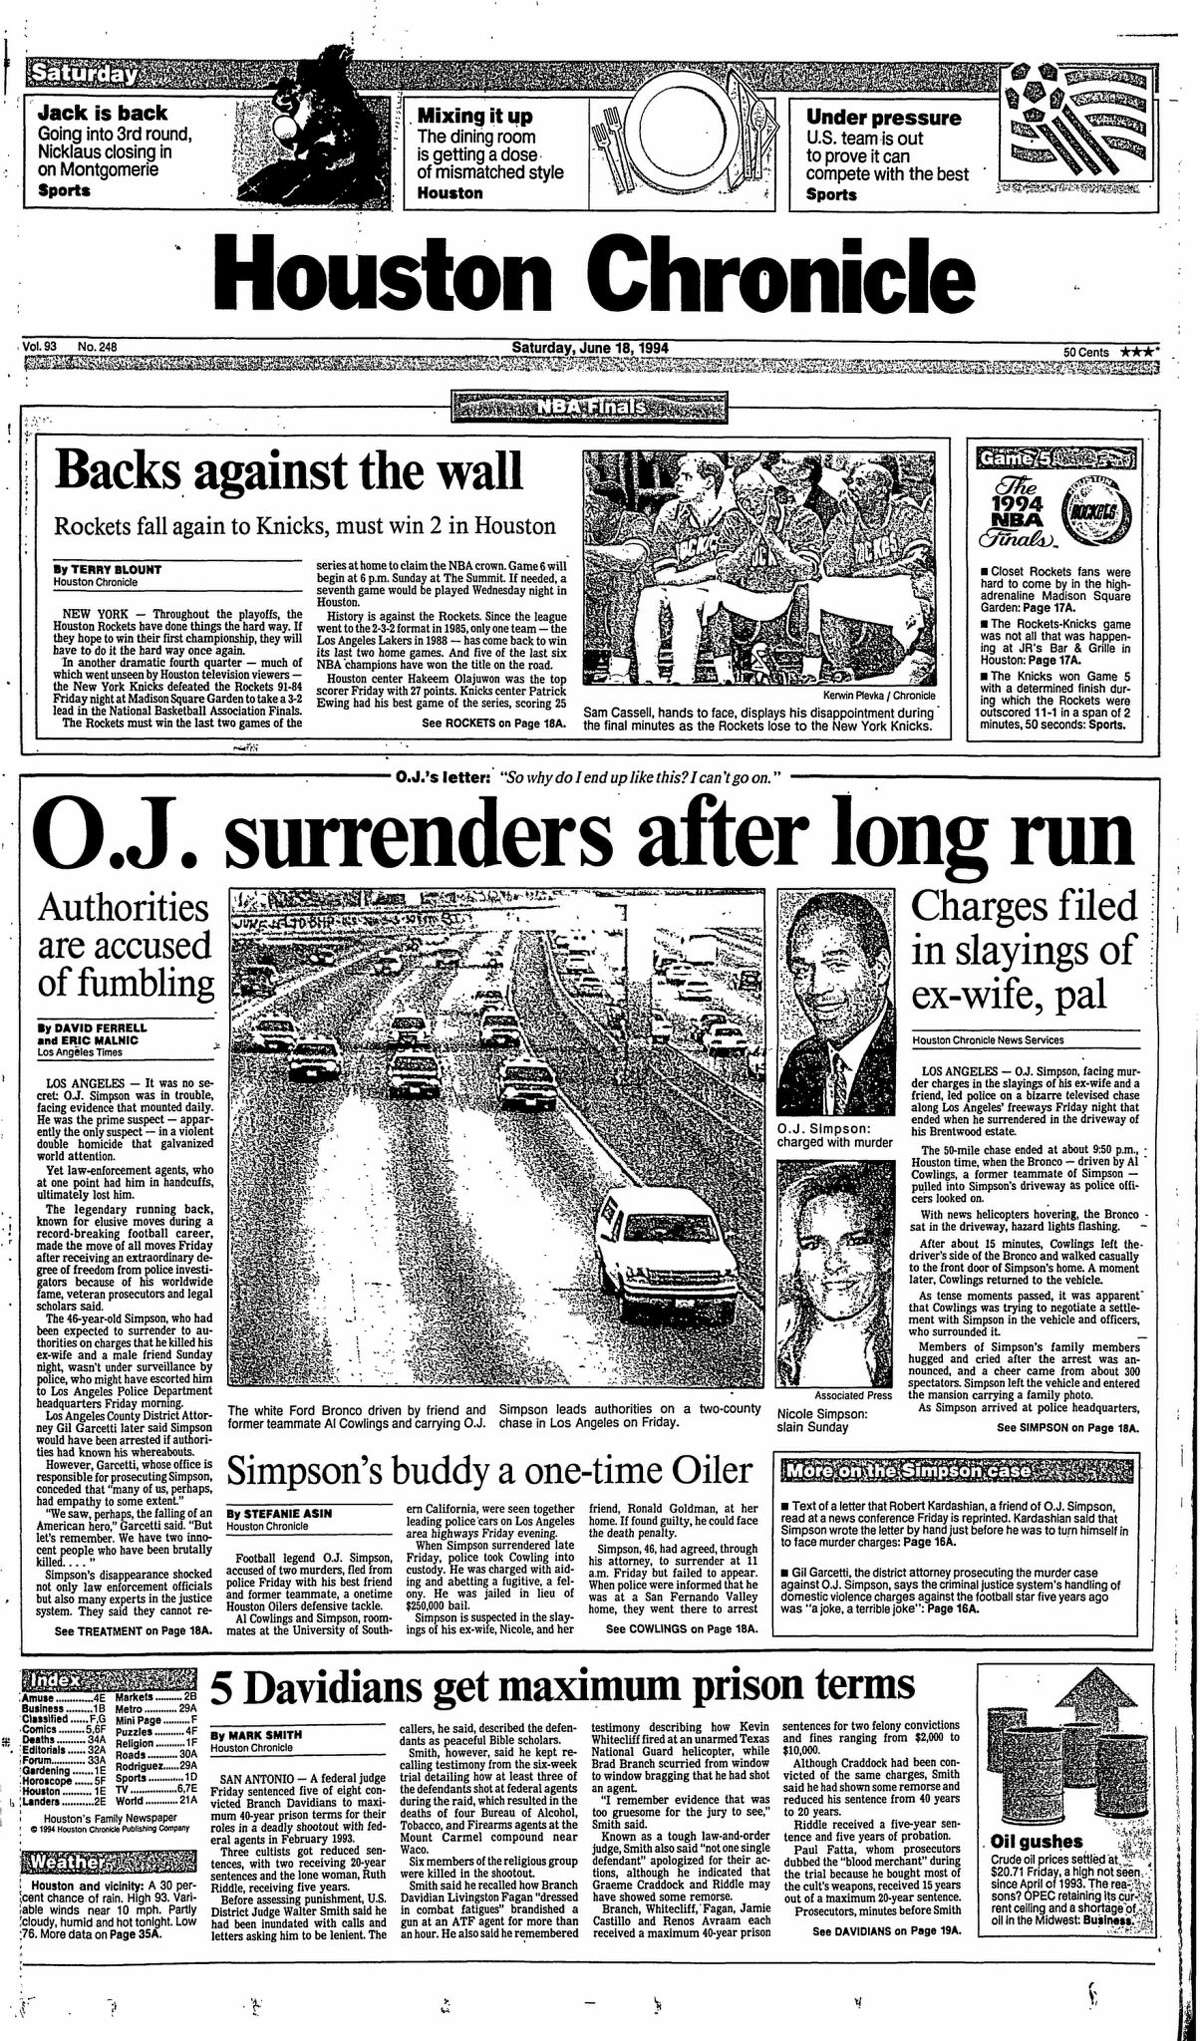 Houston Chronicle front page from June 18, 1994.